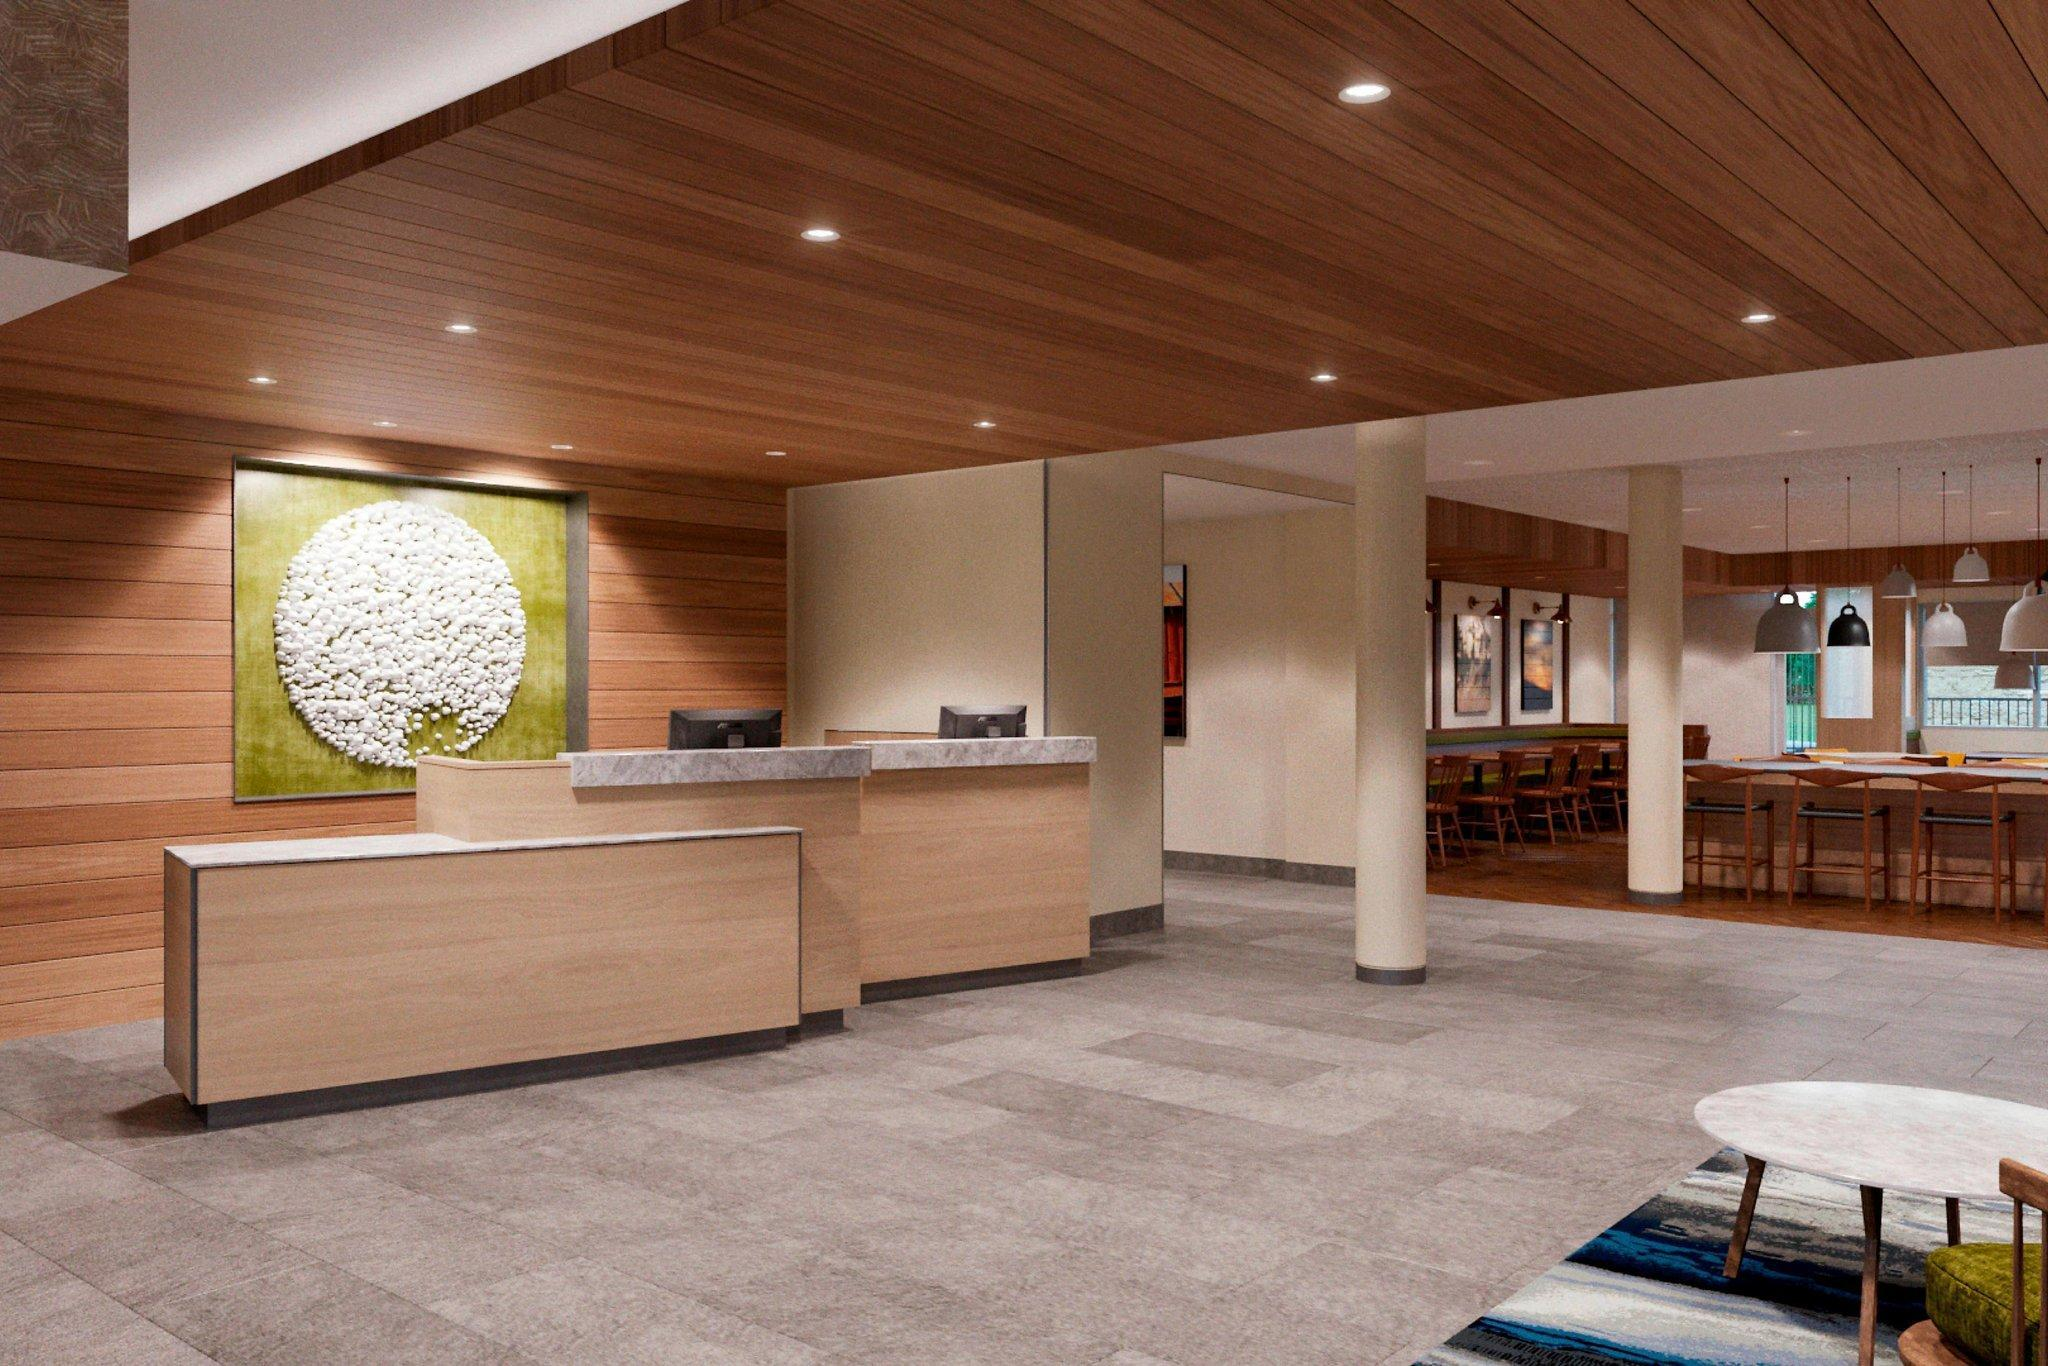 Fairfield Inn & Suites By Marriott Tampa Riverview